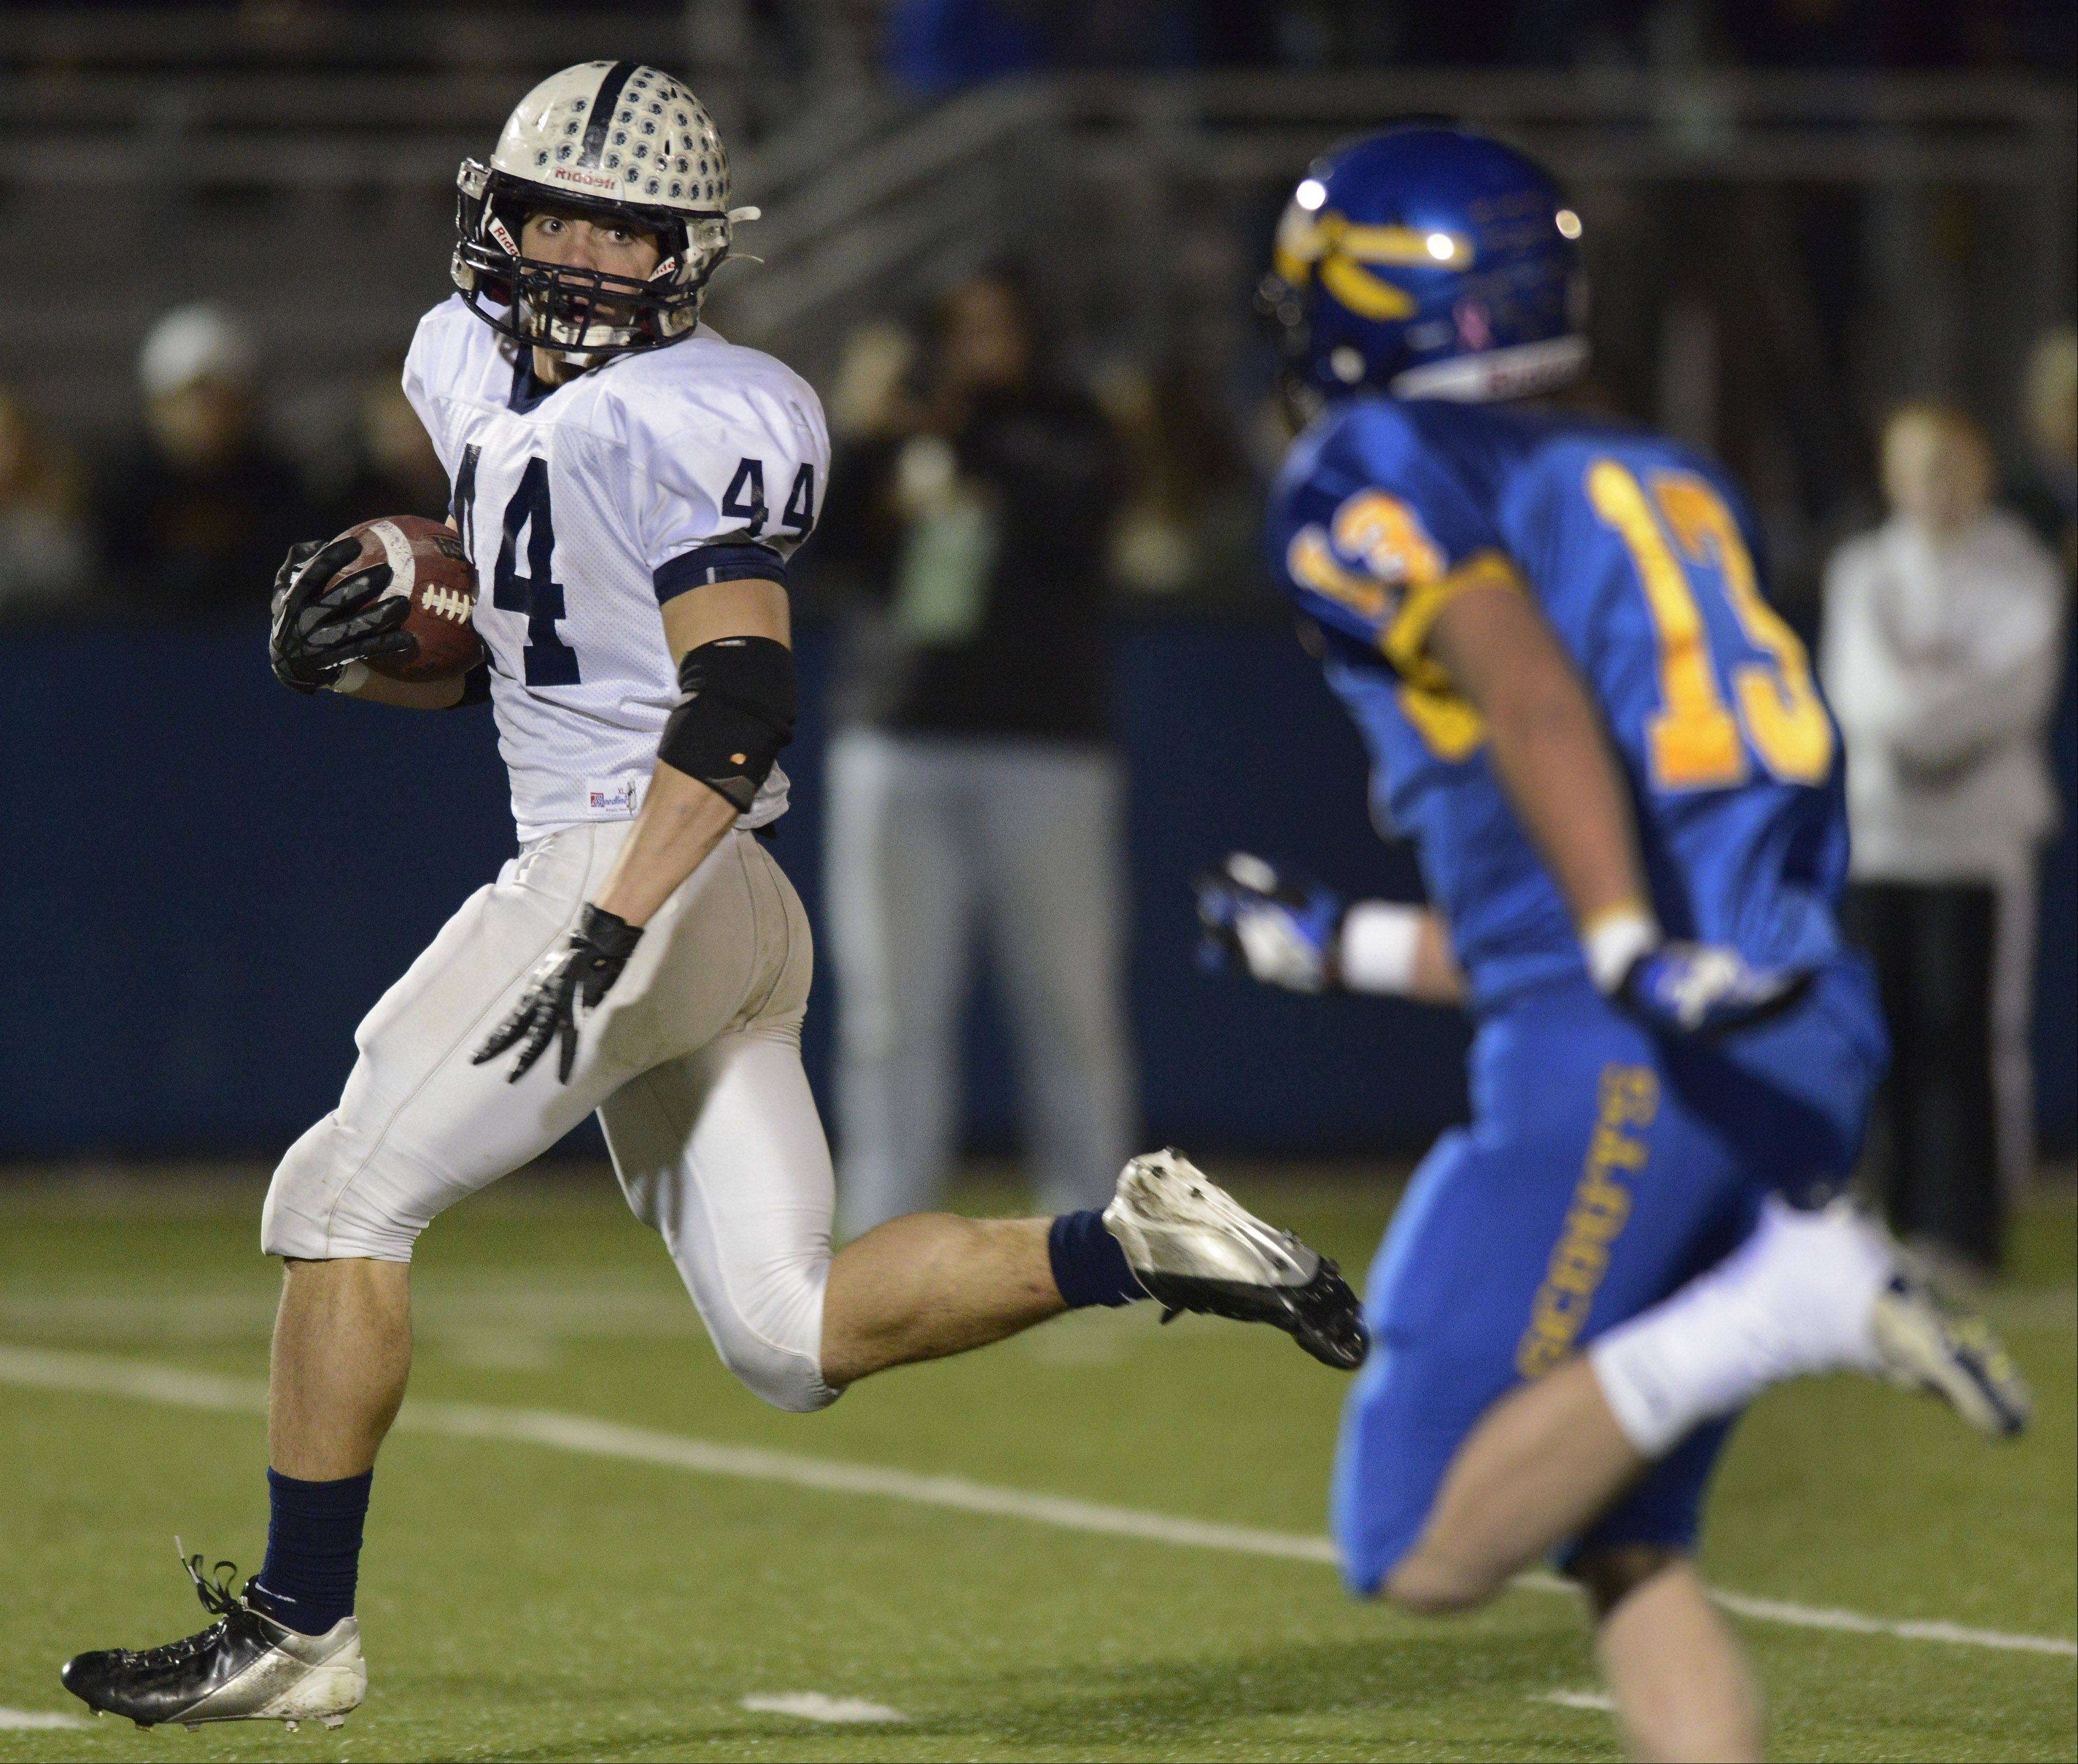 Cary-Grove's Kyle Norberg (44) looks back at Lake Forest's Charles Moss, who is the closest defender, as he carries the ball for a touchdown during Saturday's Class 6A football semifinal in Lake Forest.